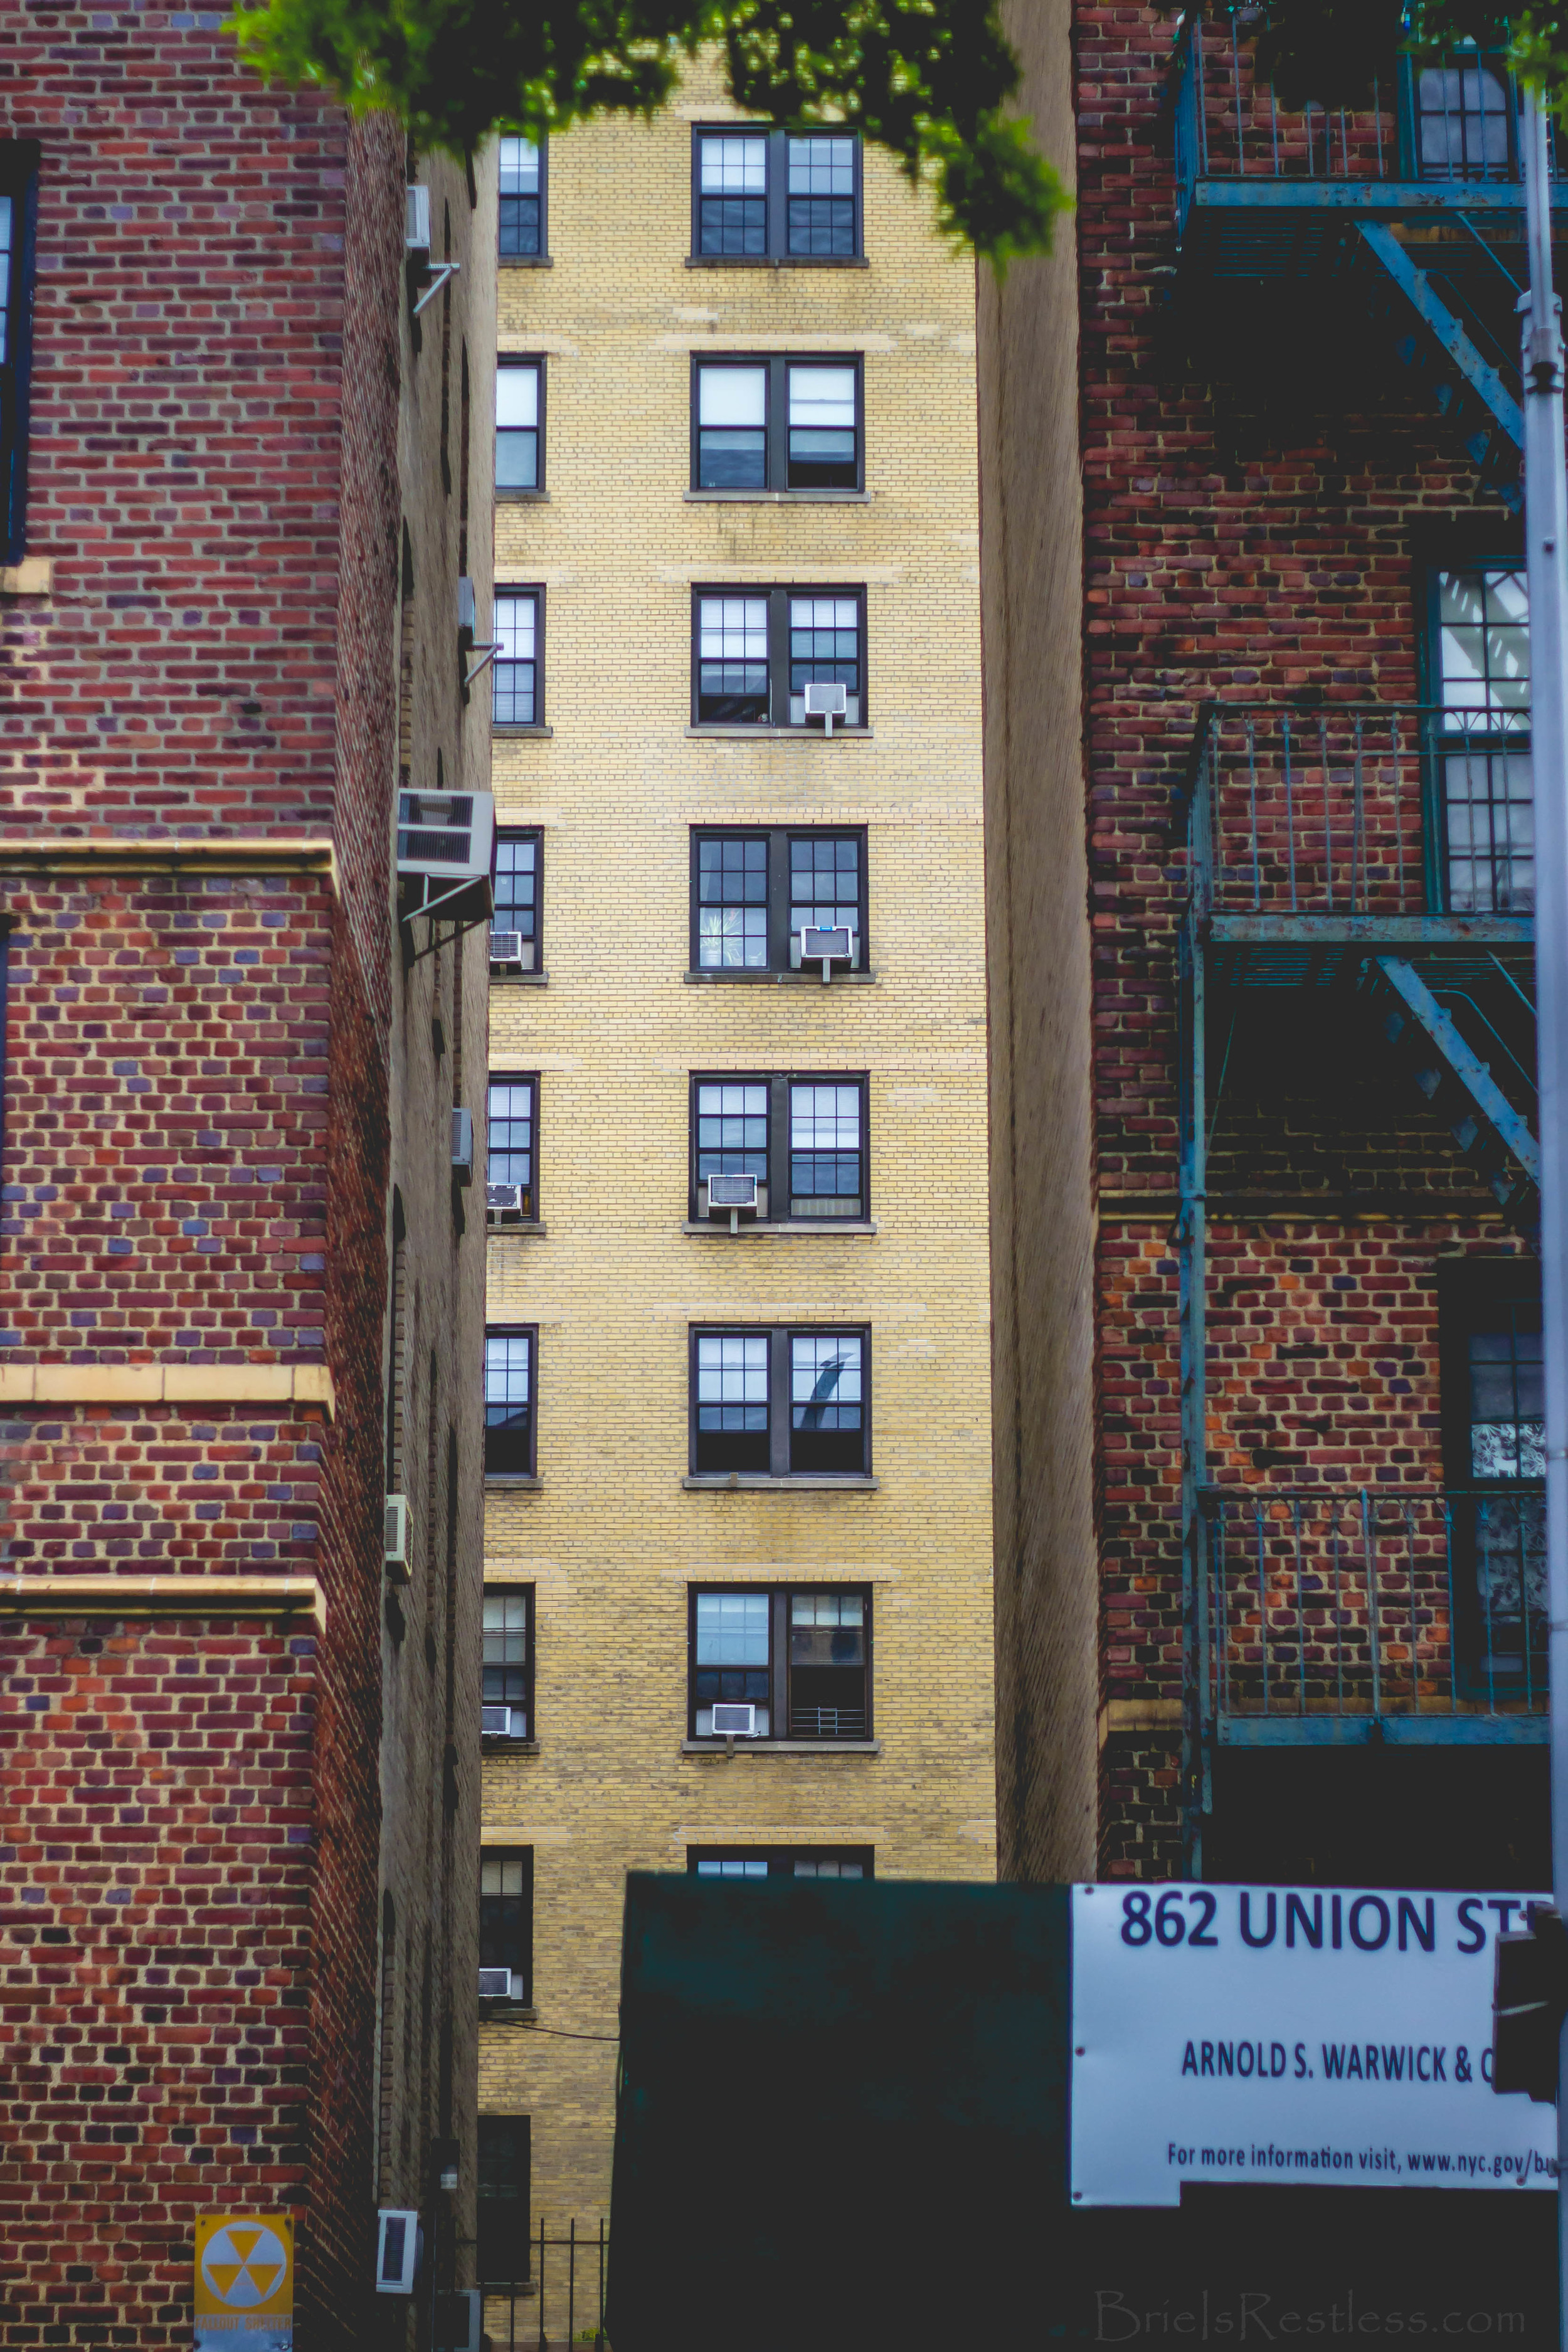 Brick Building Structures in Brooklyn - NYC.jpg